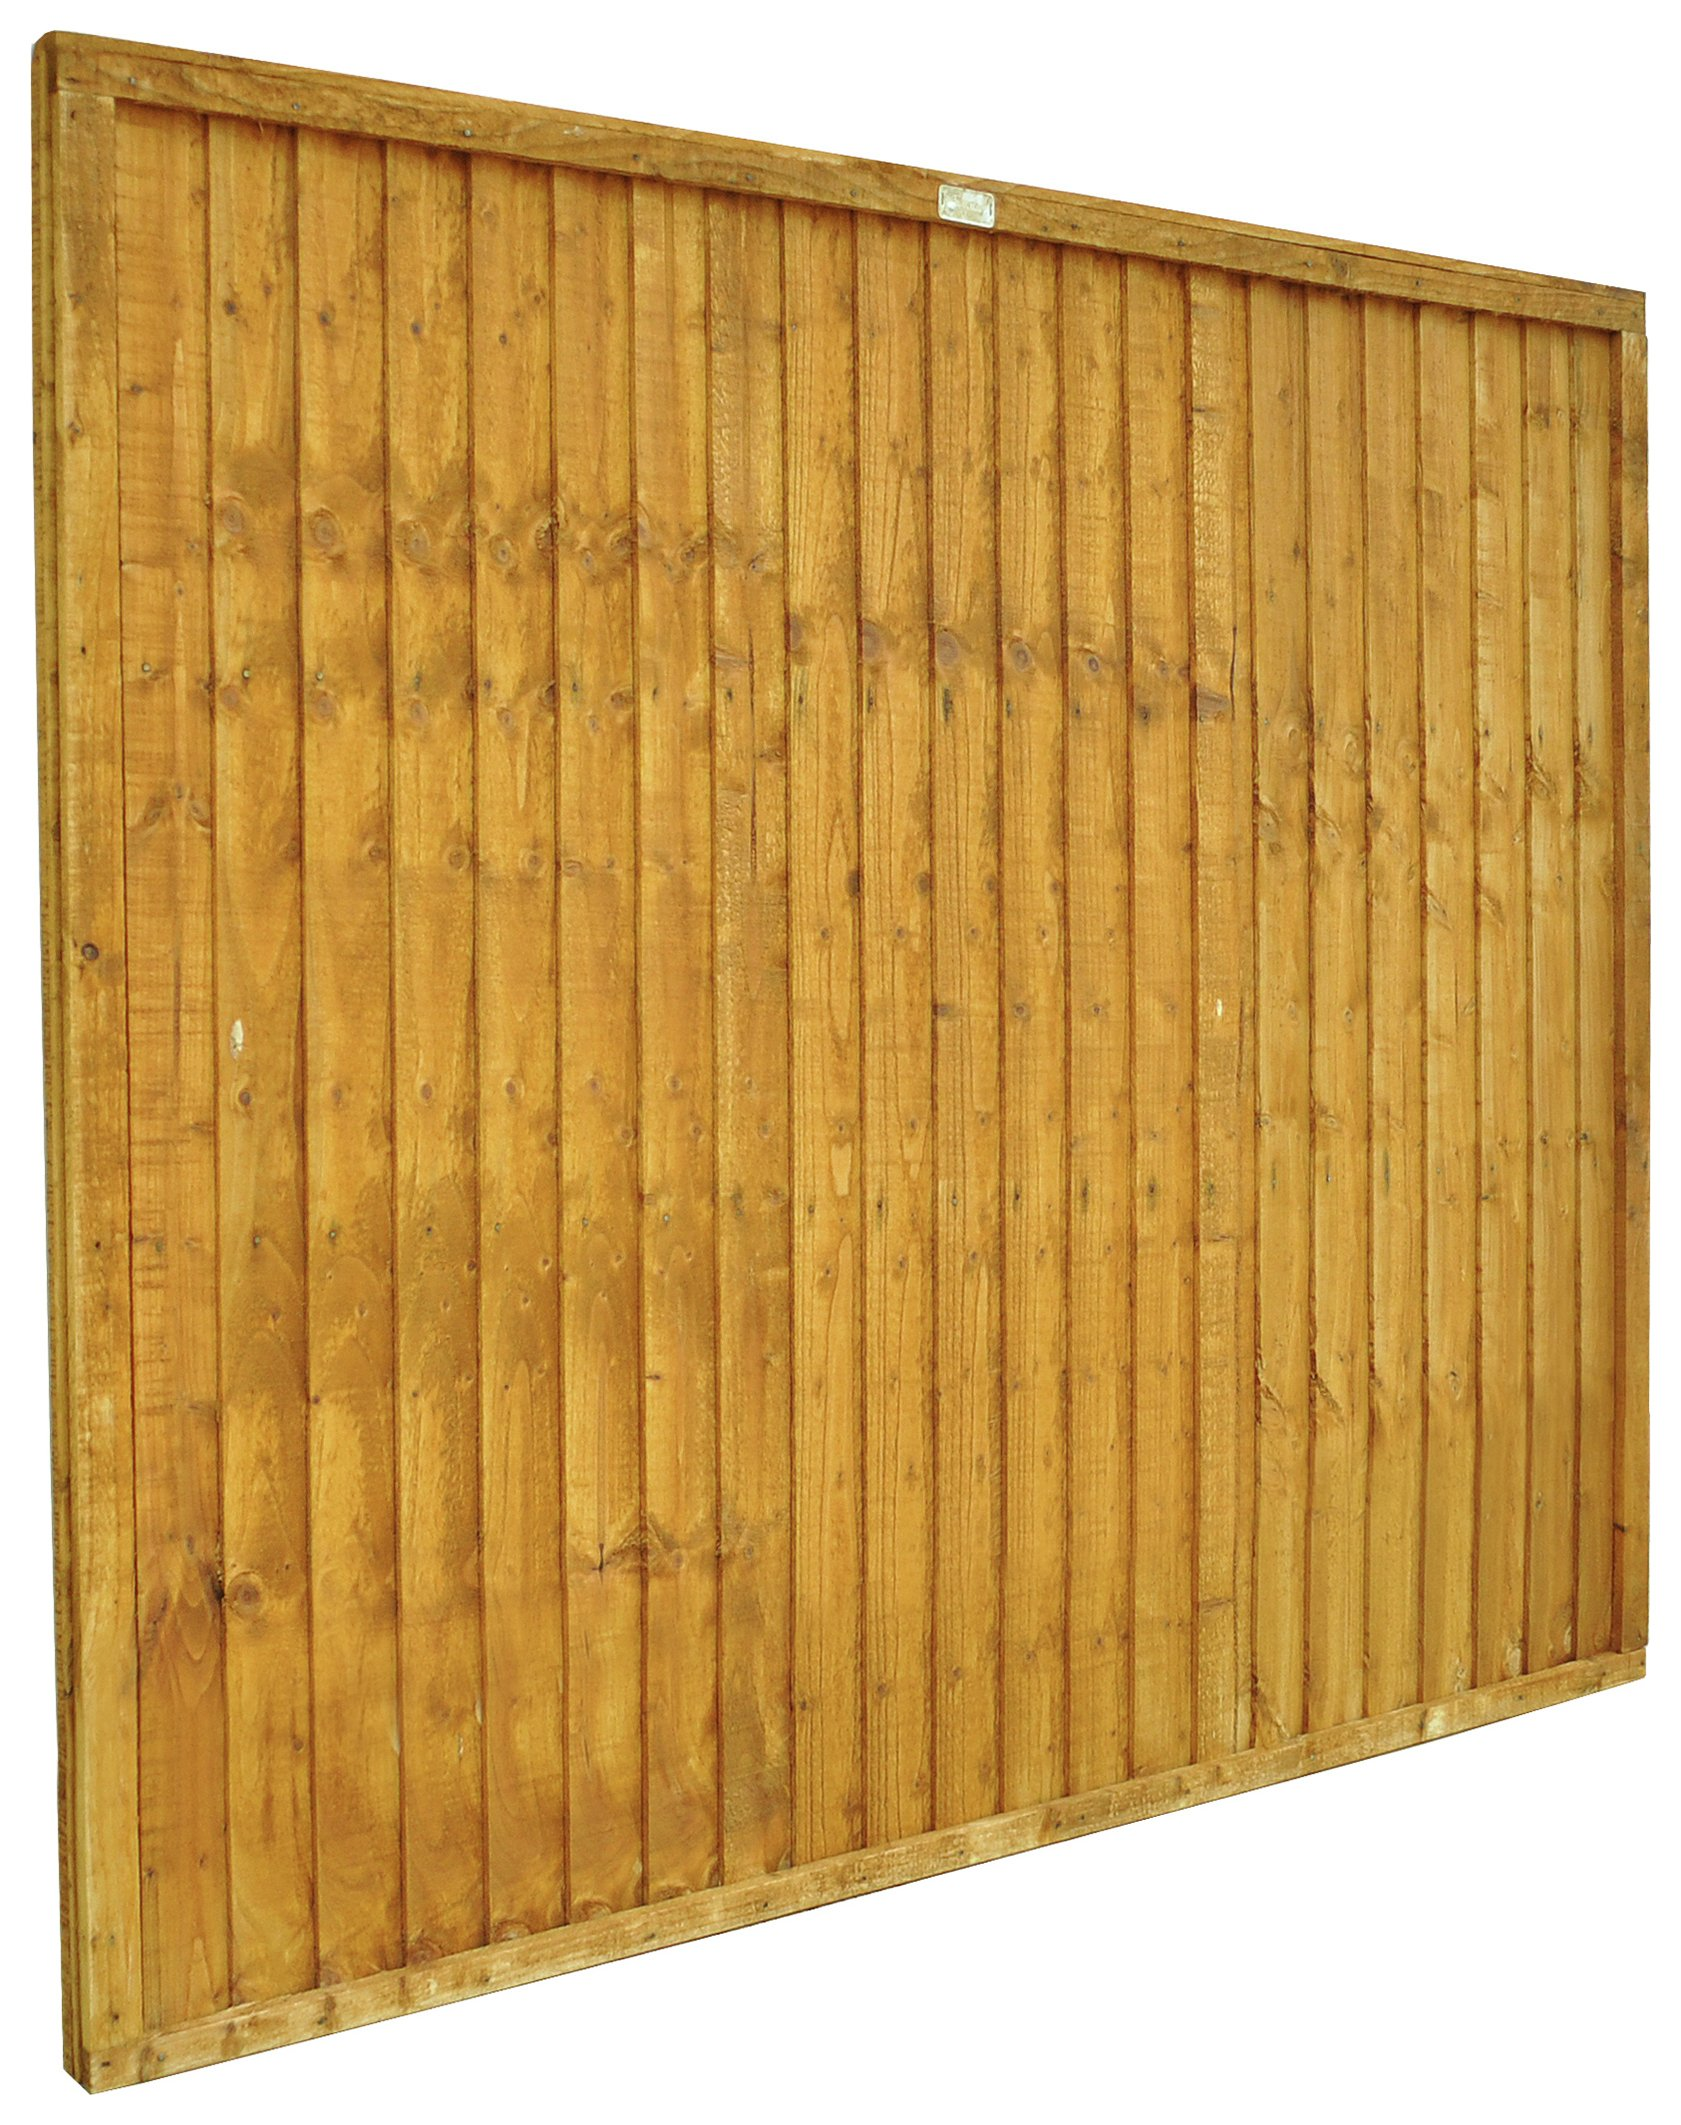 Forest 1.5m Closeboard Fence Panel - Pack of 8. lowest price